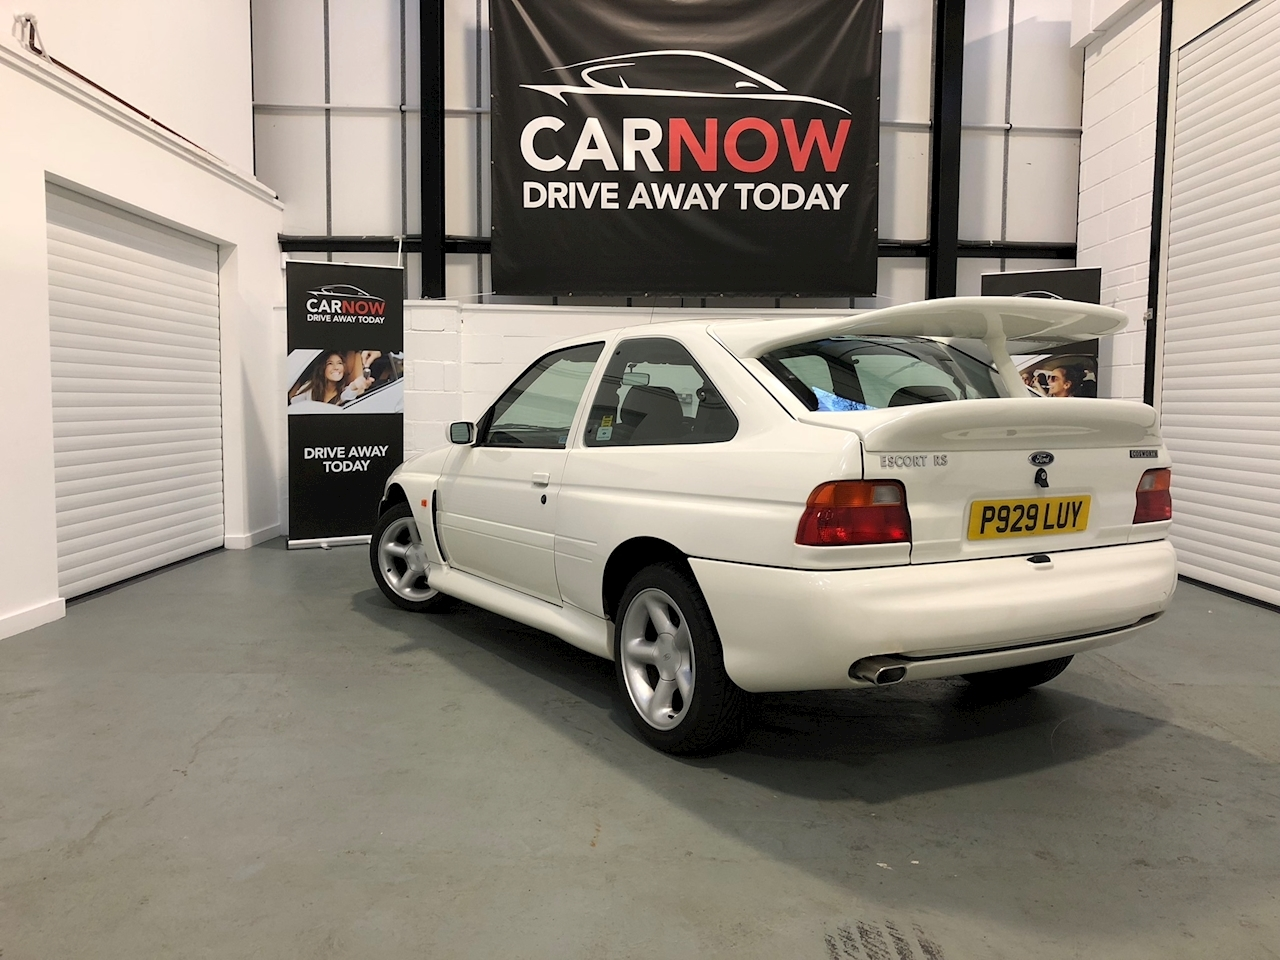 Ford Escort 91 Rs Cw Lx4 - Large 3